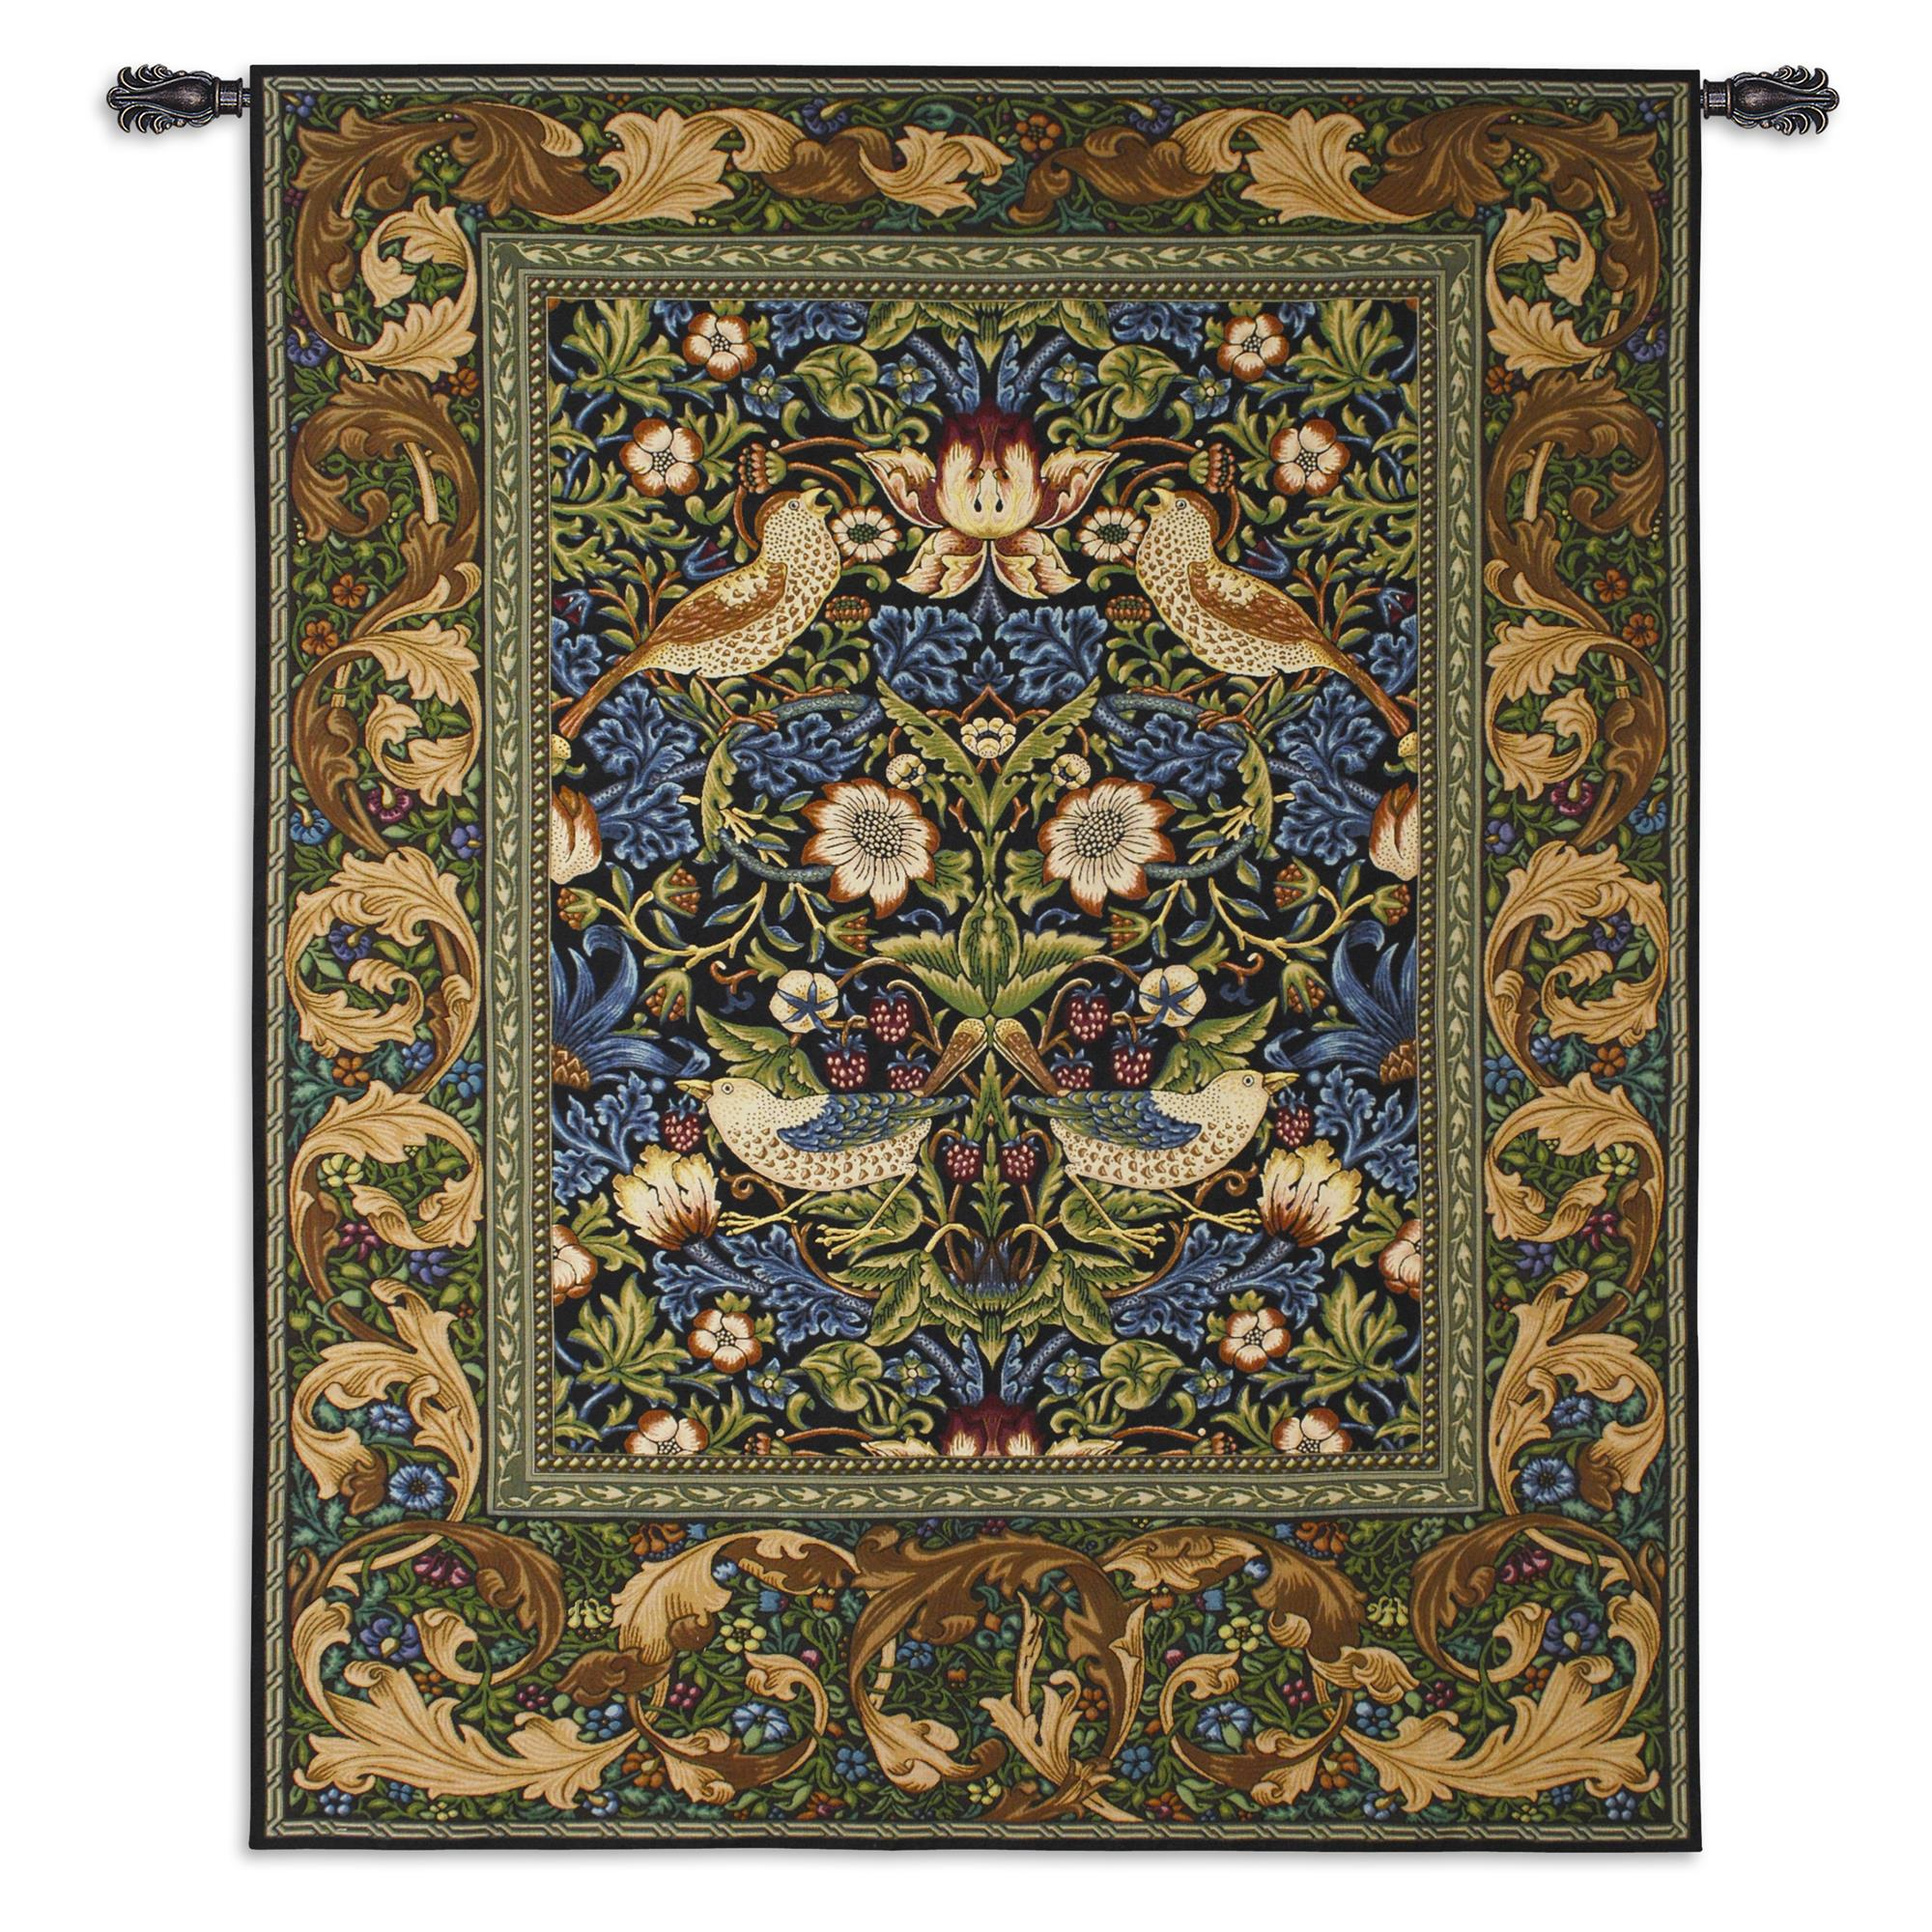 William Morris's Strawberry Thief Tapestry Wall Hanging